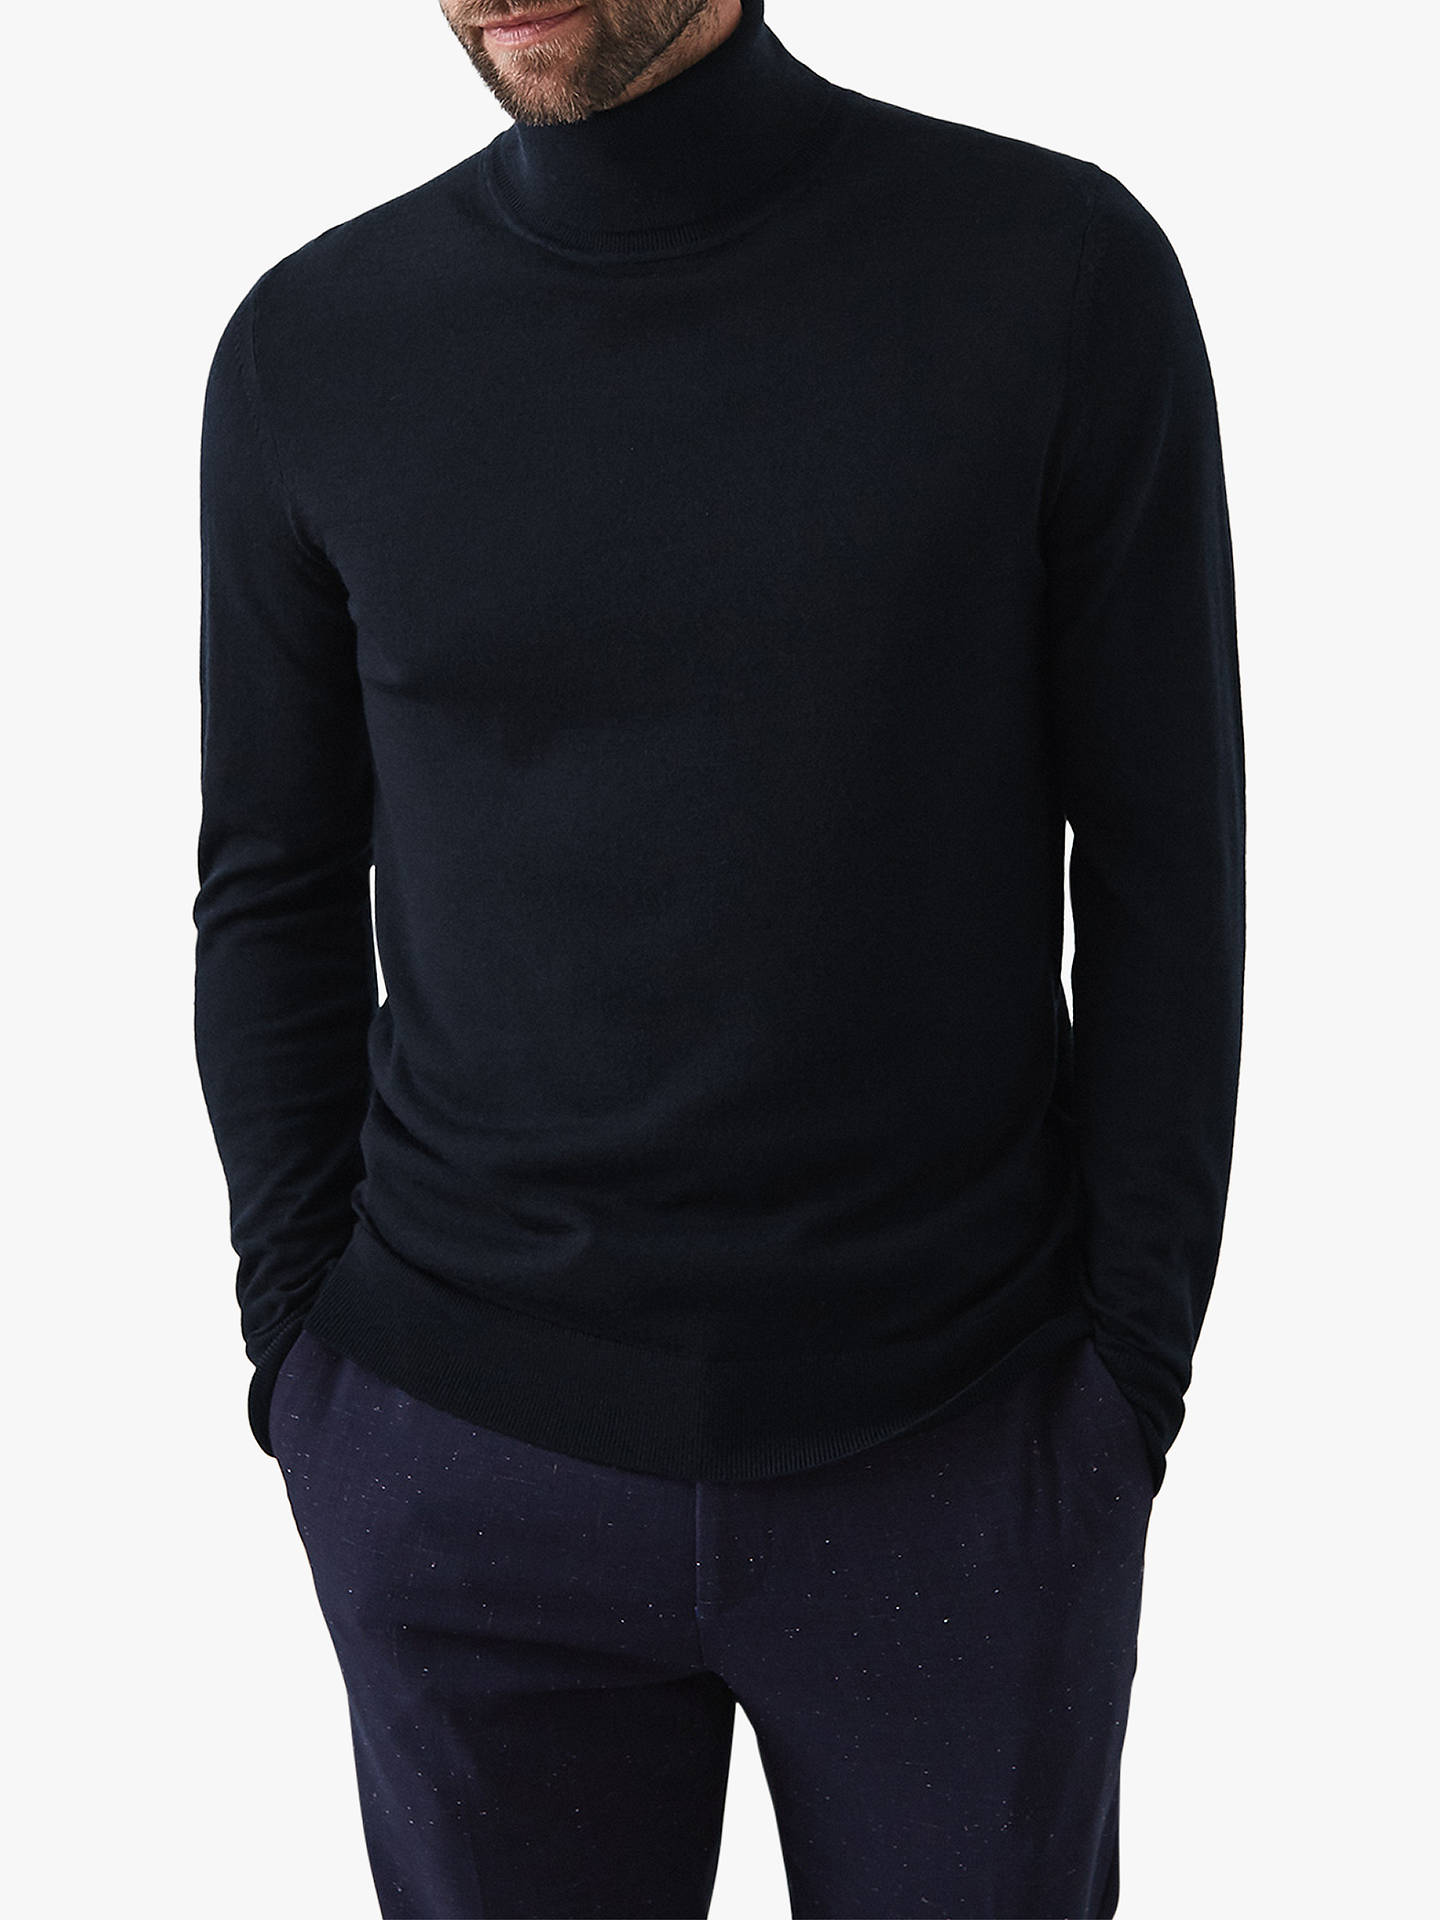 Buy Reiss Caine Roll Neck Sweater, Navy, S Online at johnlewis.com